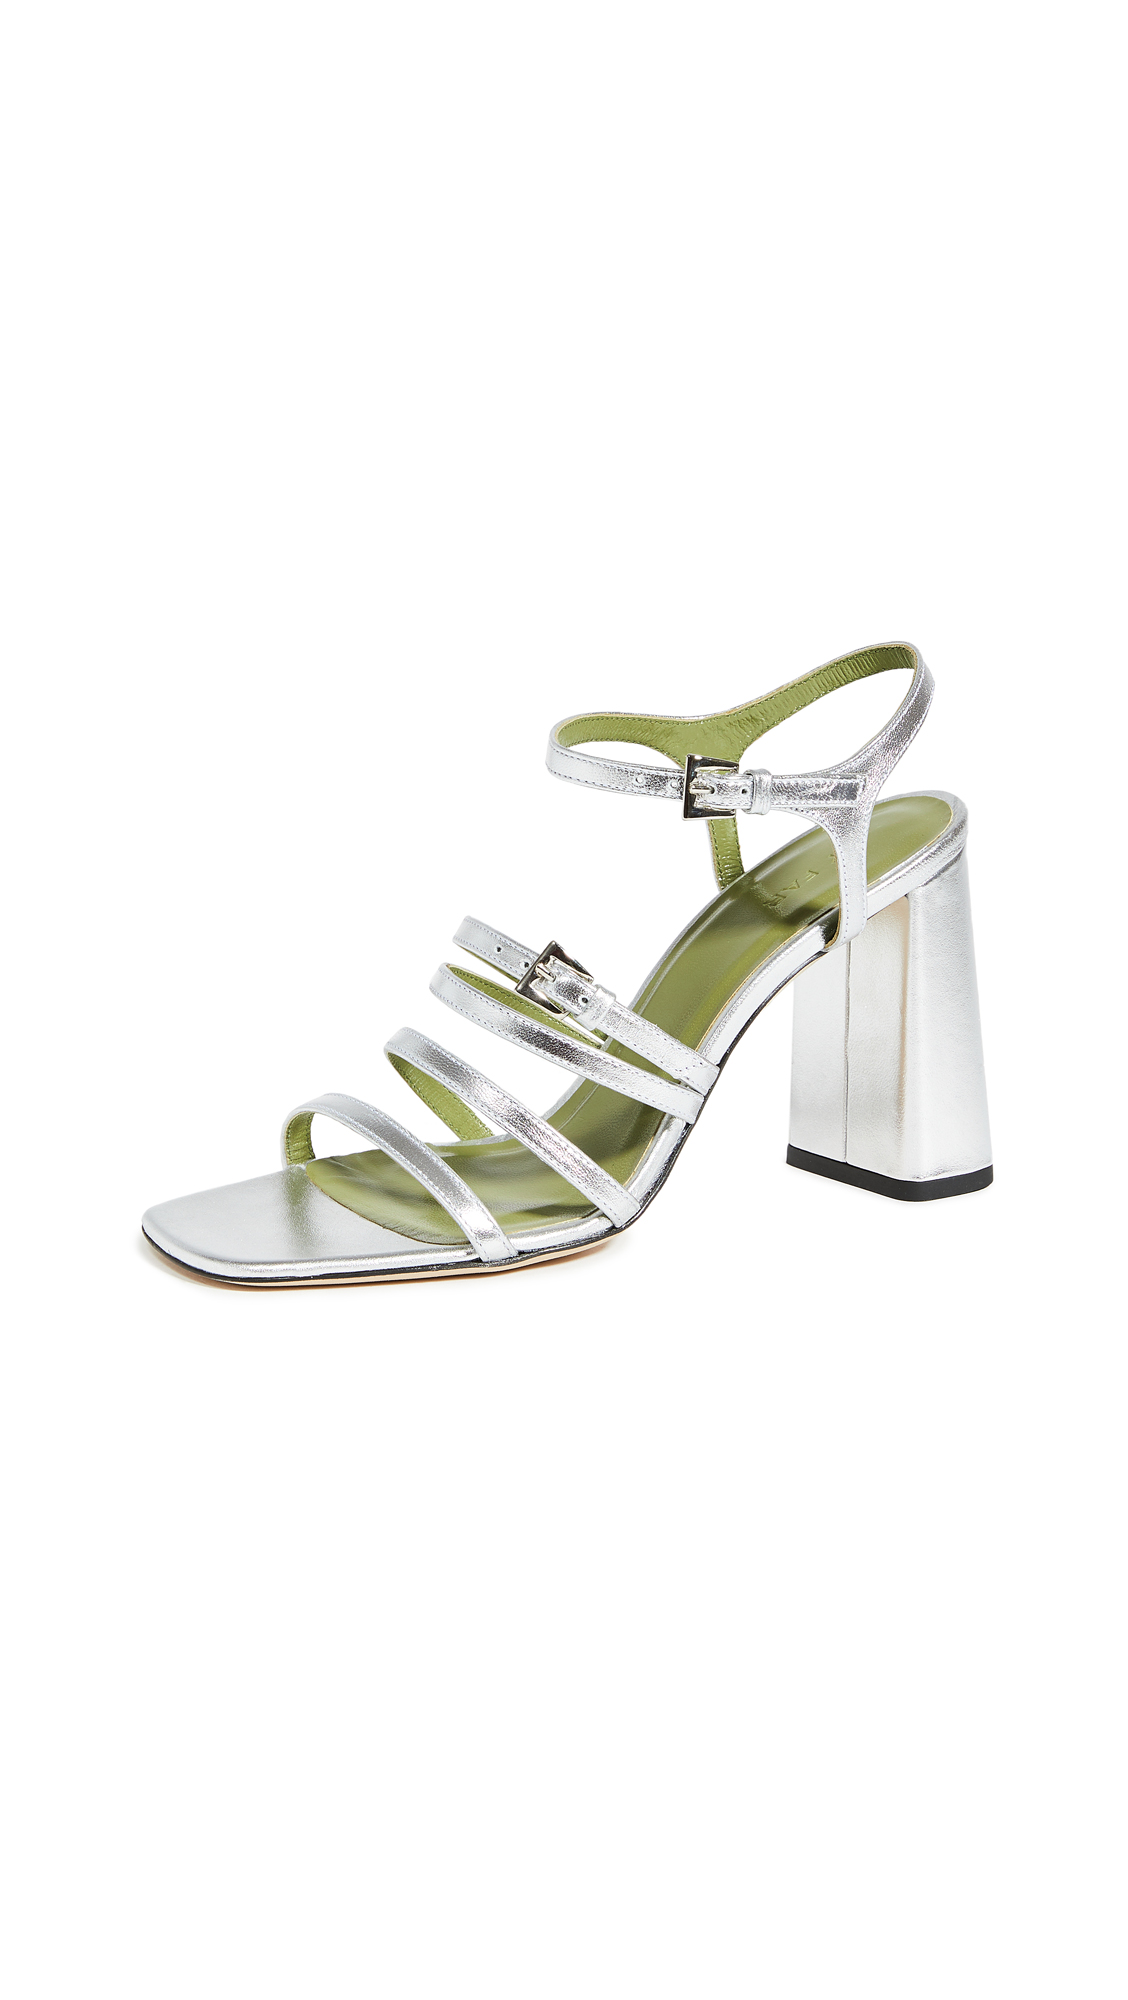 Buy BY FAR Goldie Sandals online, shop BY FAR